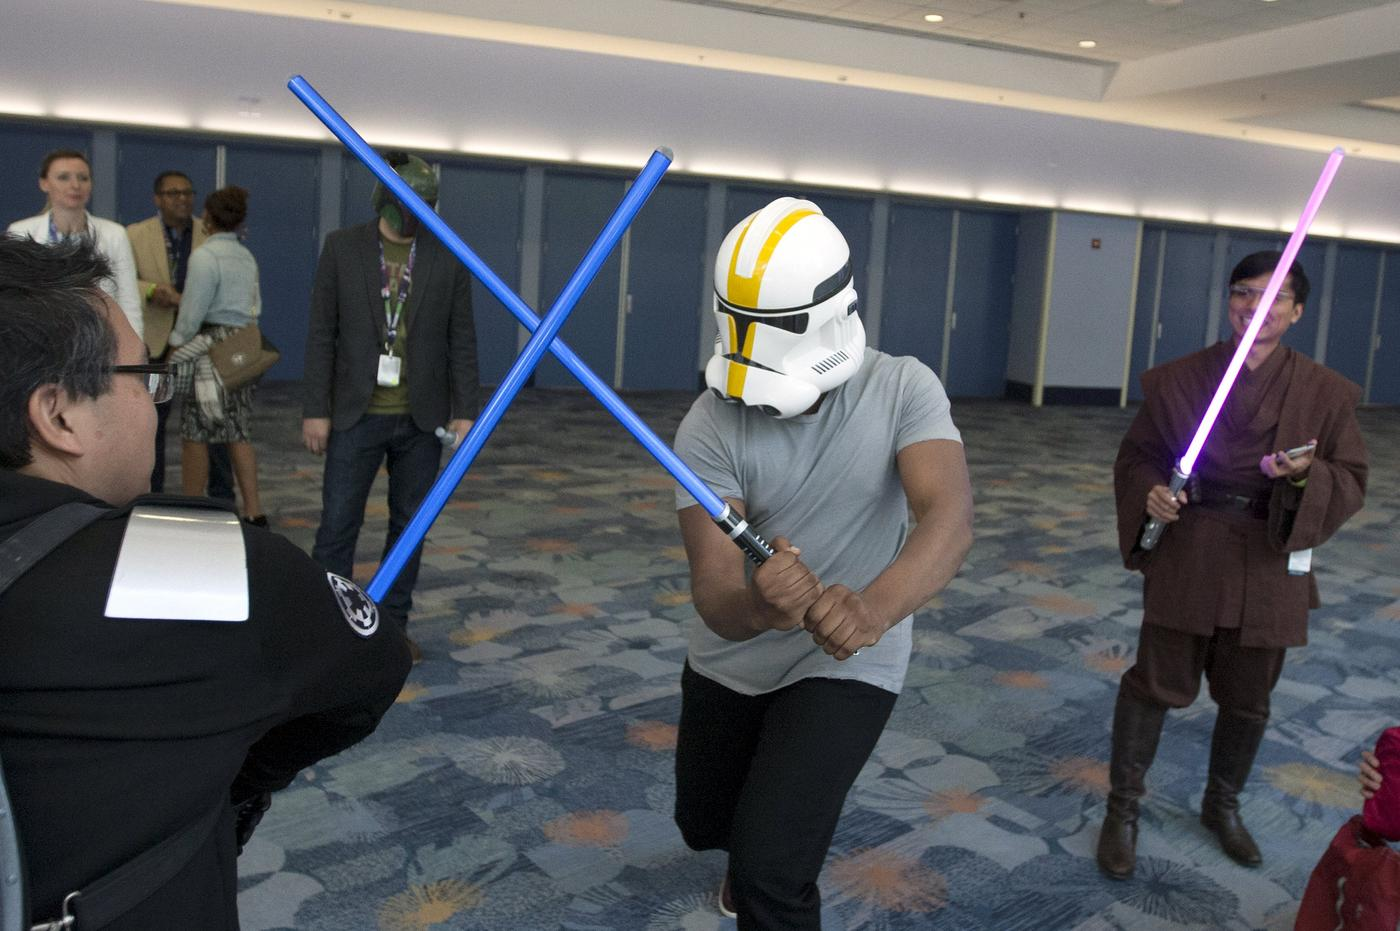 Star Wars: The Force Awakens star John Boyega uses cunning disguise to wander through crowds at convention